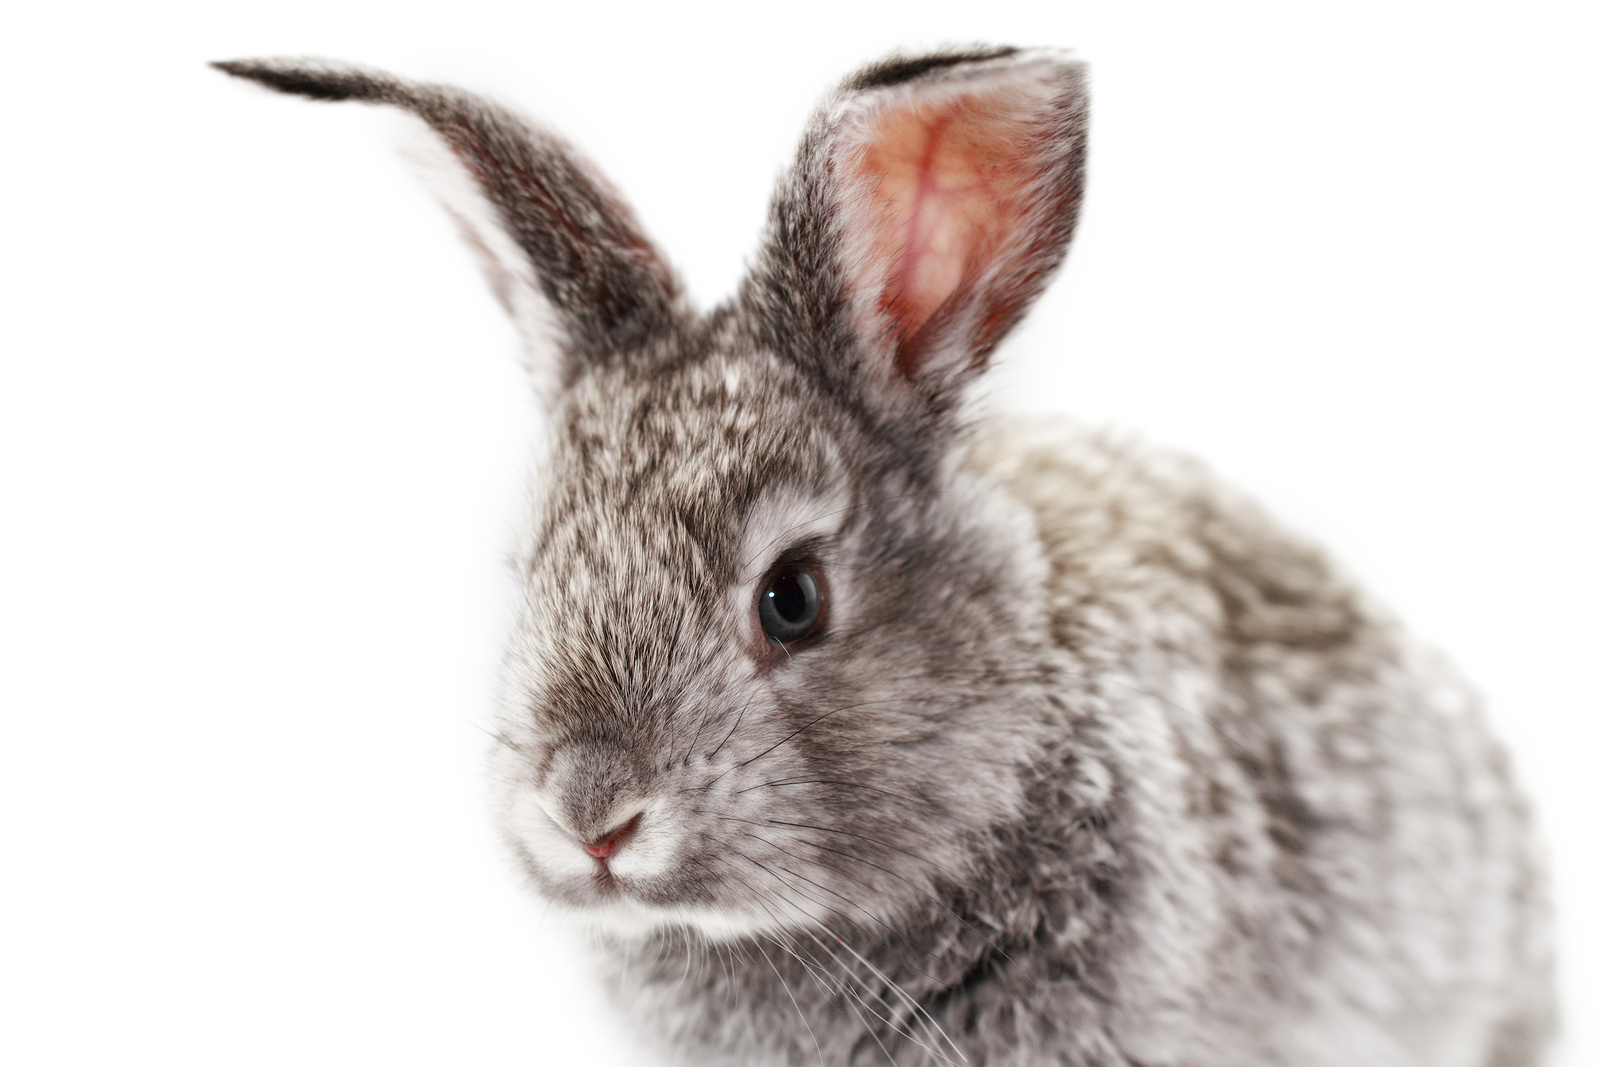 Wanted: Cruelty-Free and Safe Products